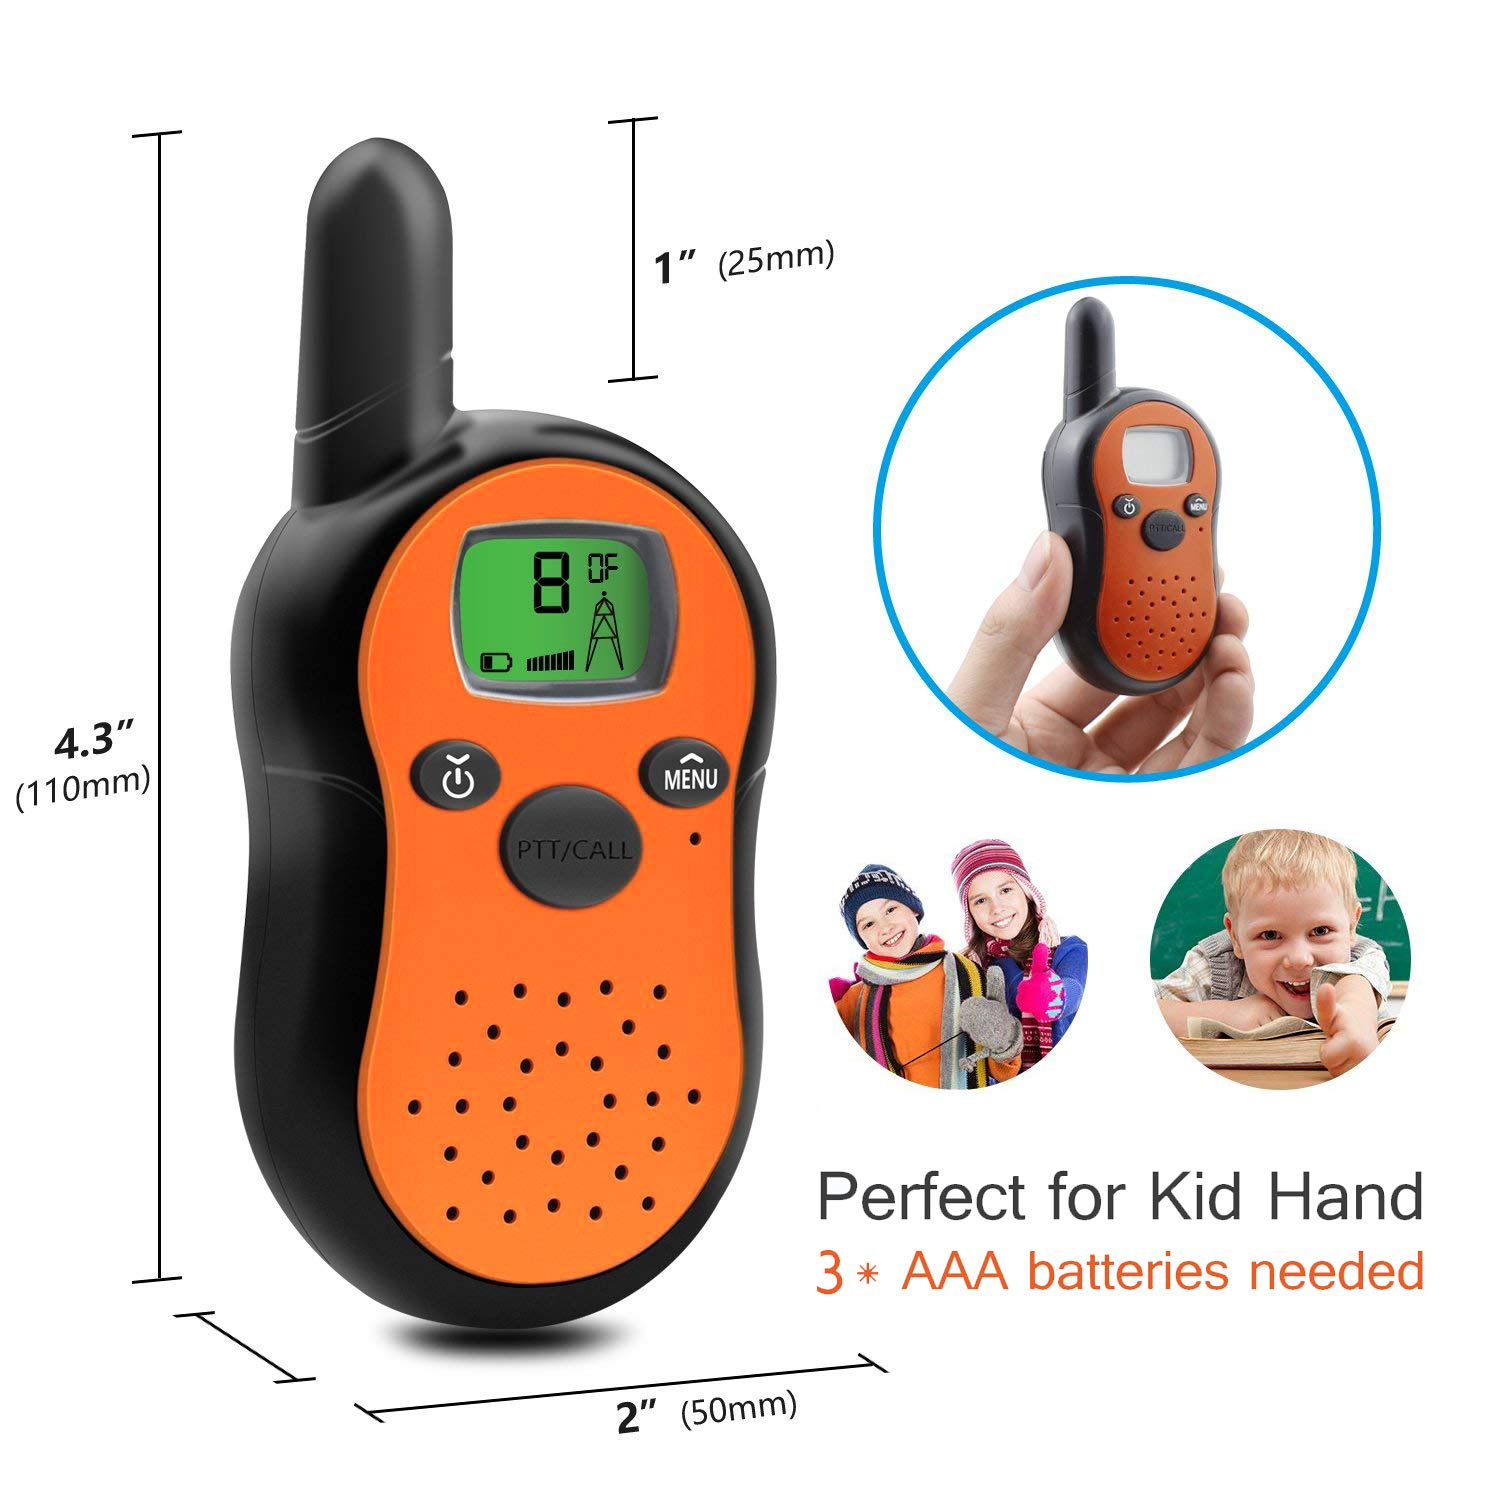 TiMi Tree Walkie Talkies for Kids Toddlers Two Way Radios Toy Voice Activated Long Range, Outdoor Exploration Gifts for Age 5 6 7 Year Old Boys Girls by TiMi Tree (Image #2)